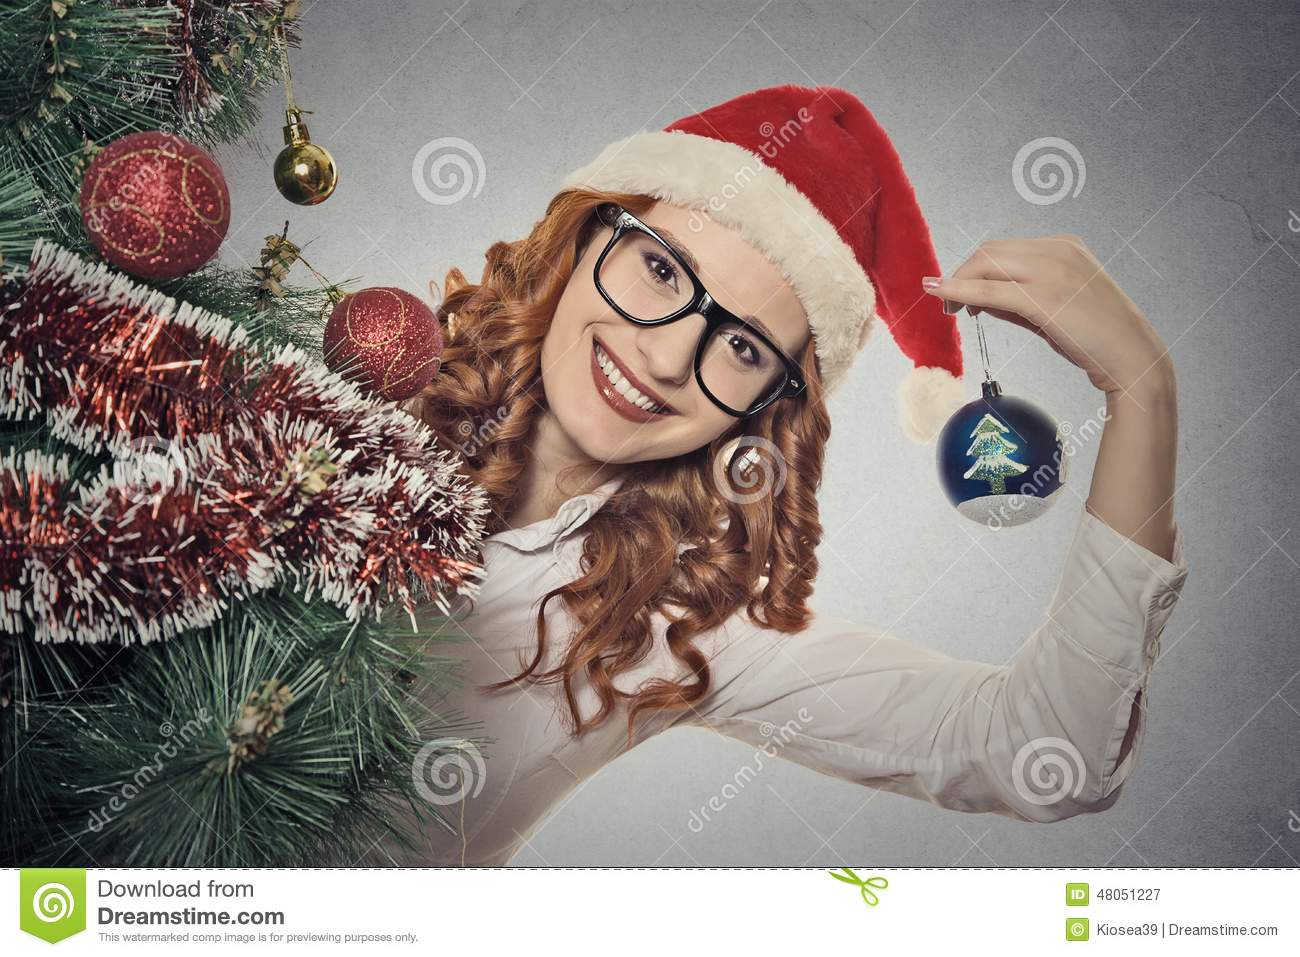 eab42b589b7a Portrait beautiful young christmas girl wearing santa claus clothes  isolated on grey wall background. Positive face expression, emotion,  feelings.